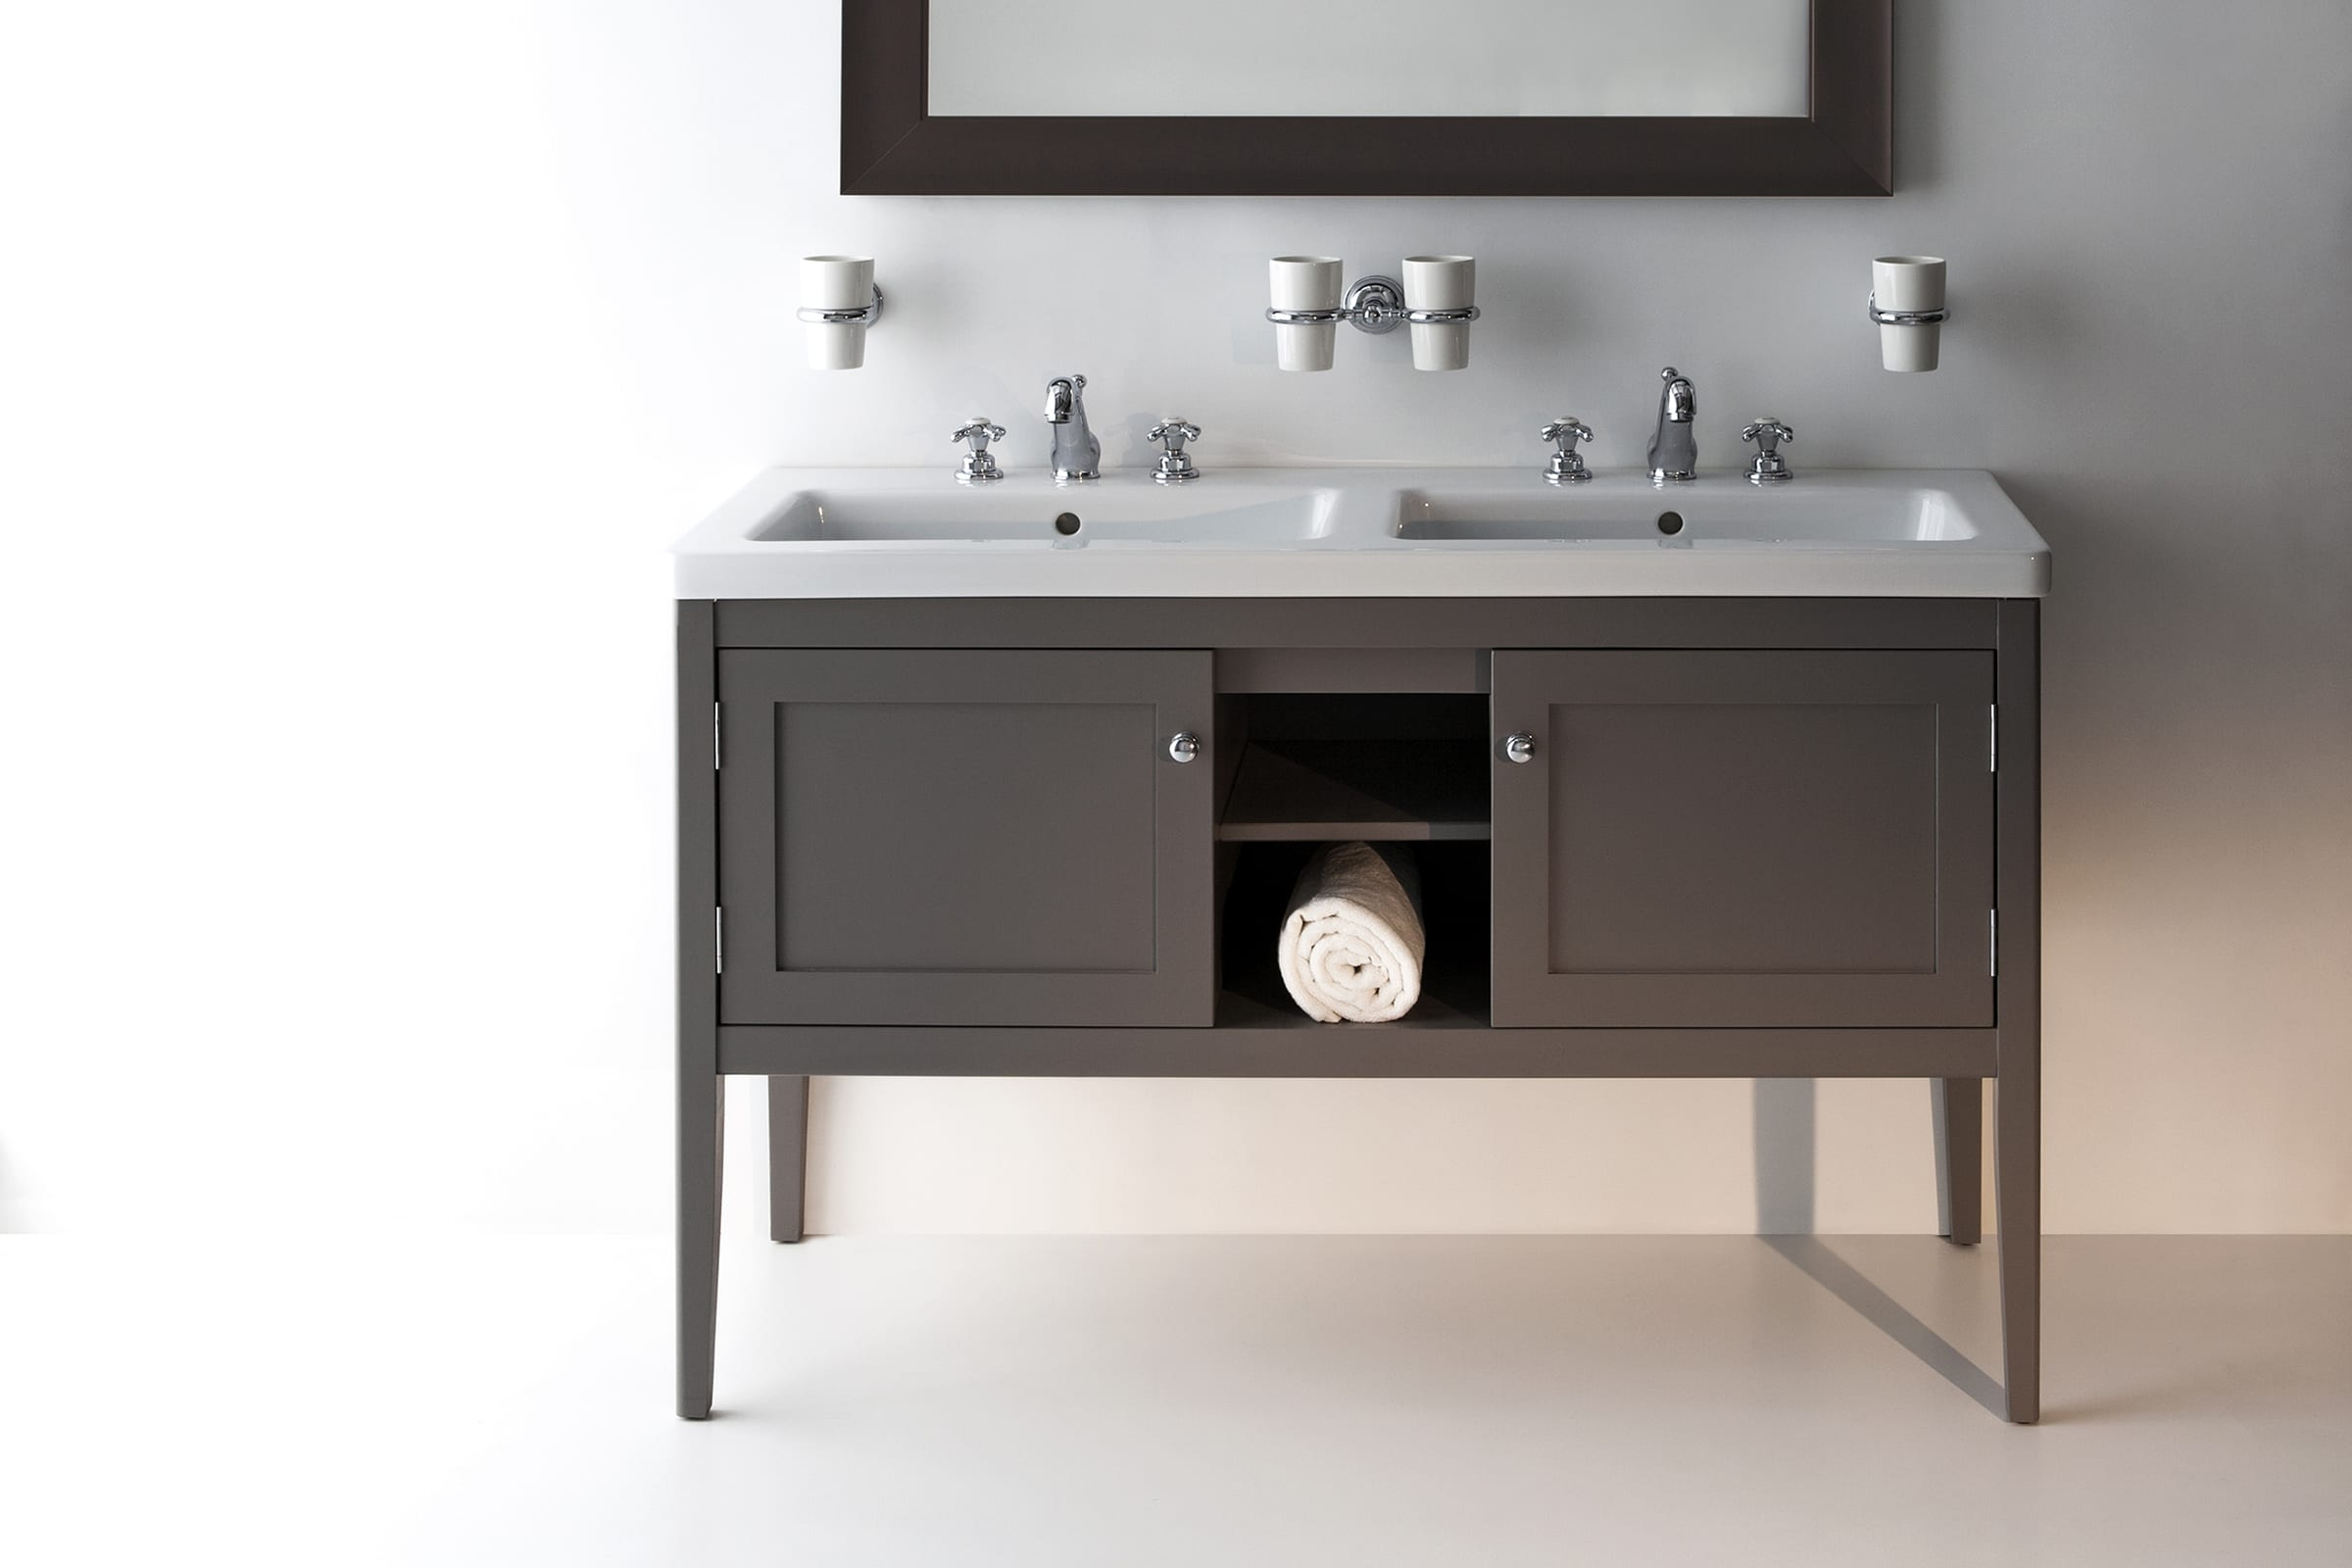 Arrezzi Bathroom Vanity Cupboards Albion Bath Co Find Out More